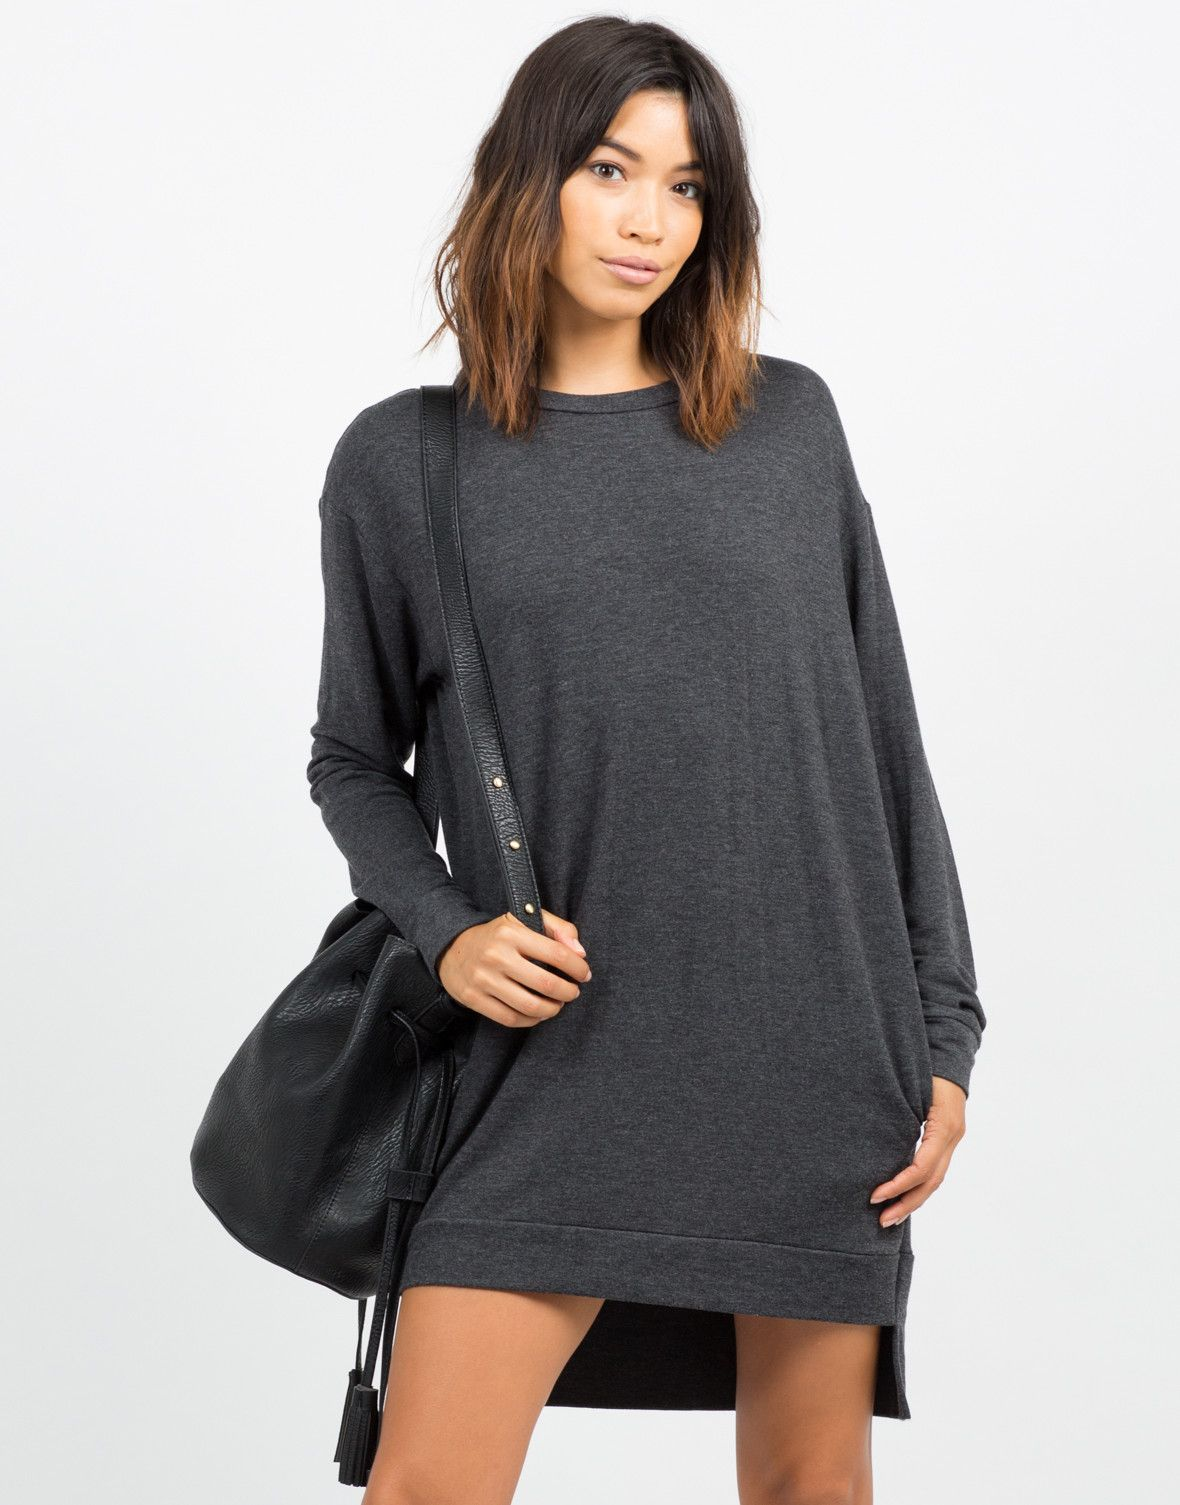 Oversized Long Sleeve Sweater Dress | Long sleeve turtleneck, Knee ...